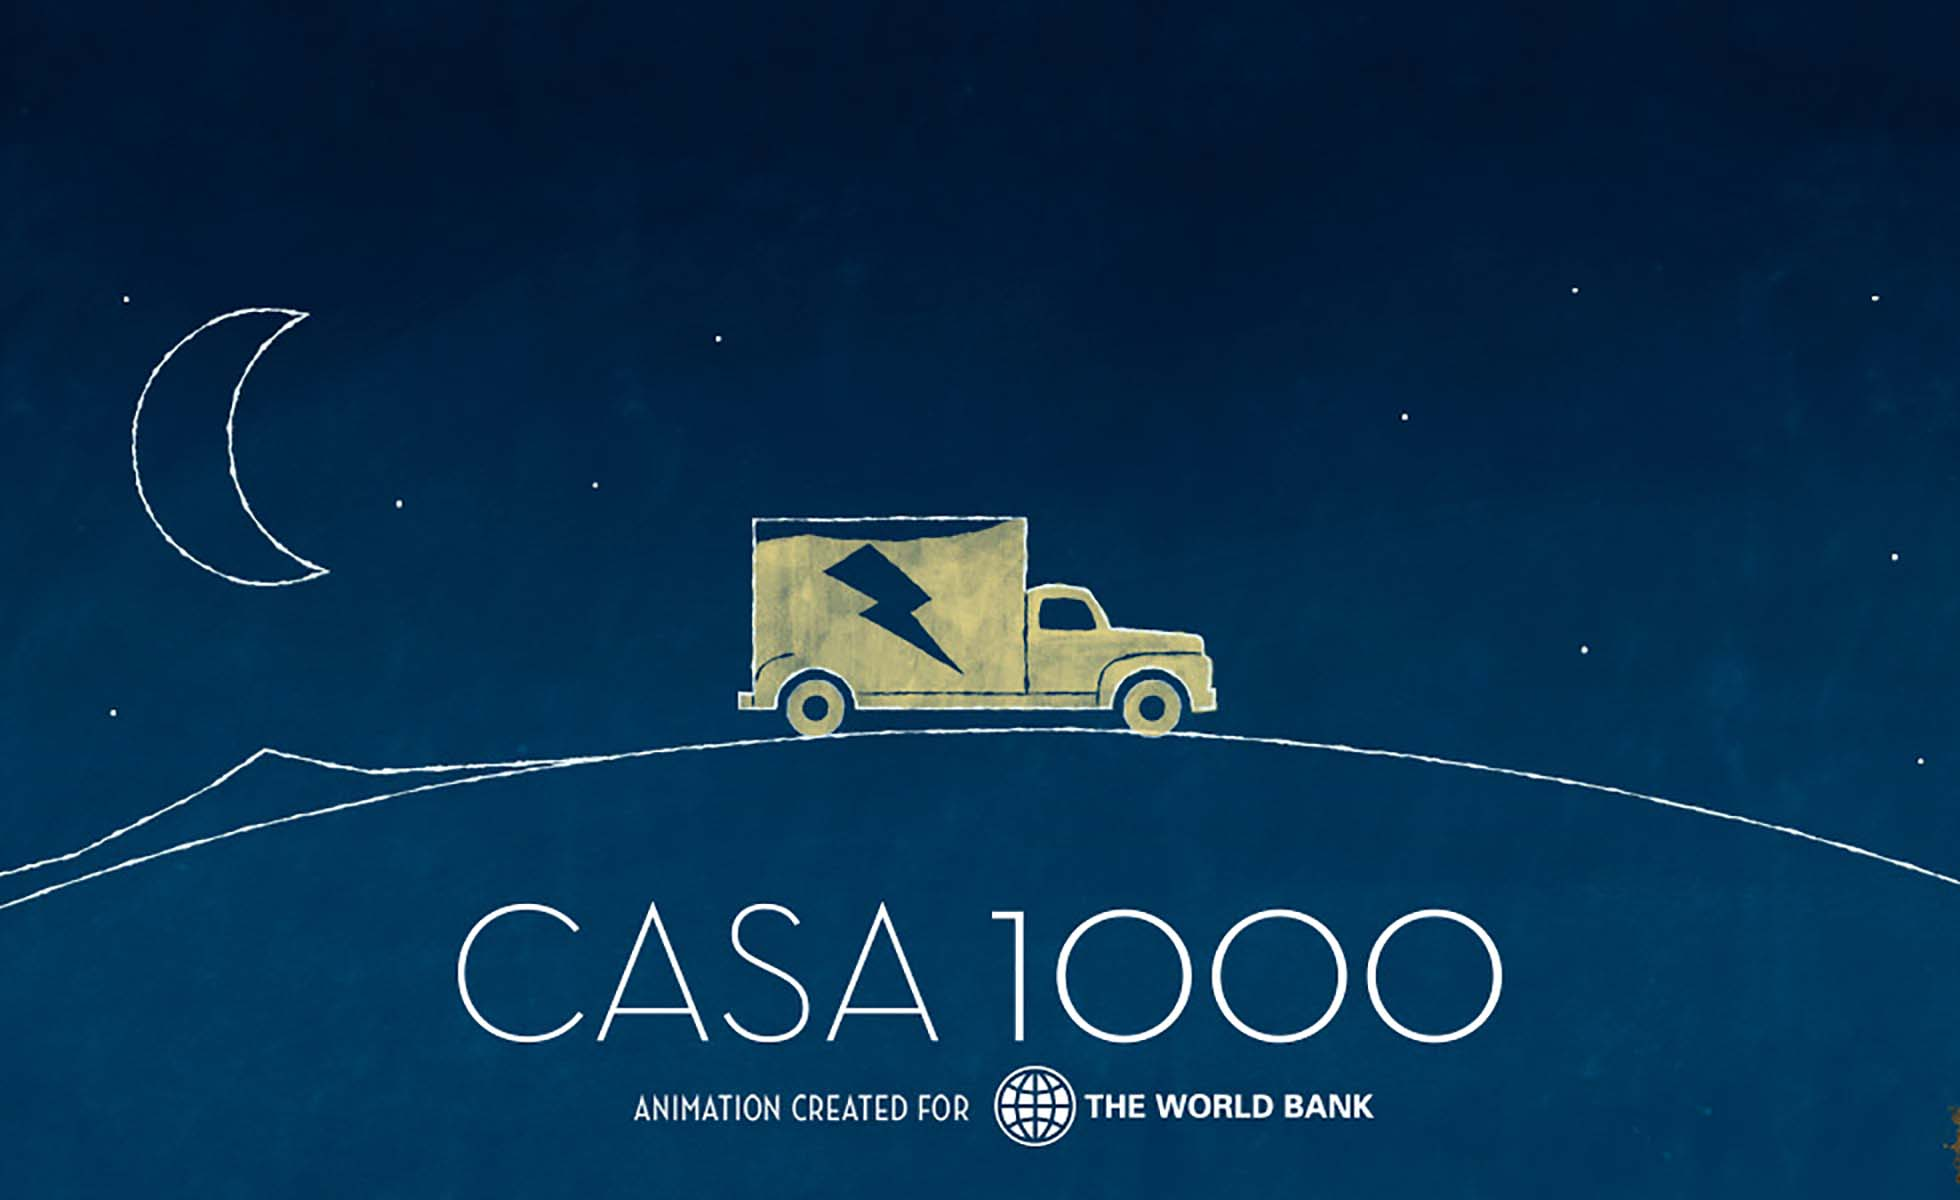 Casa 1000 animation created for the World Bank